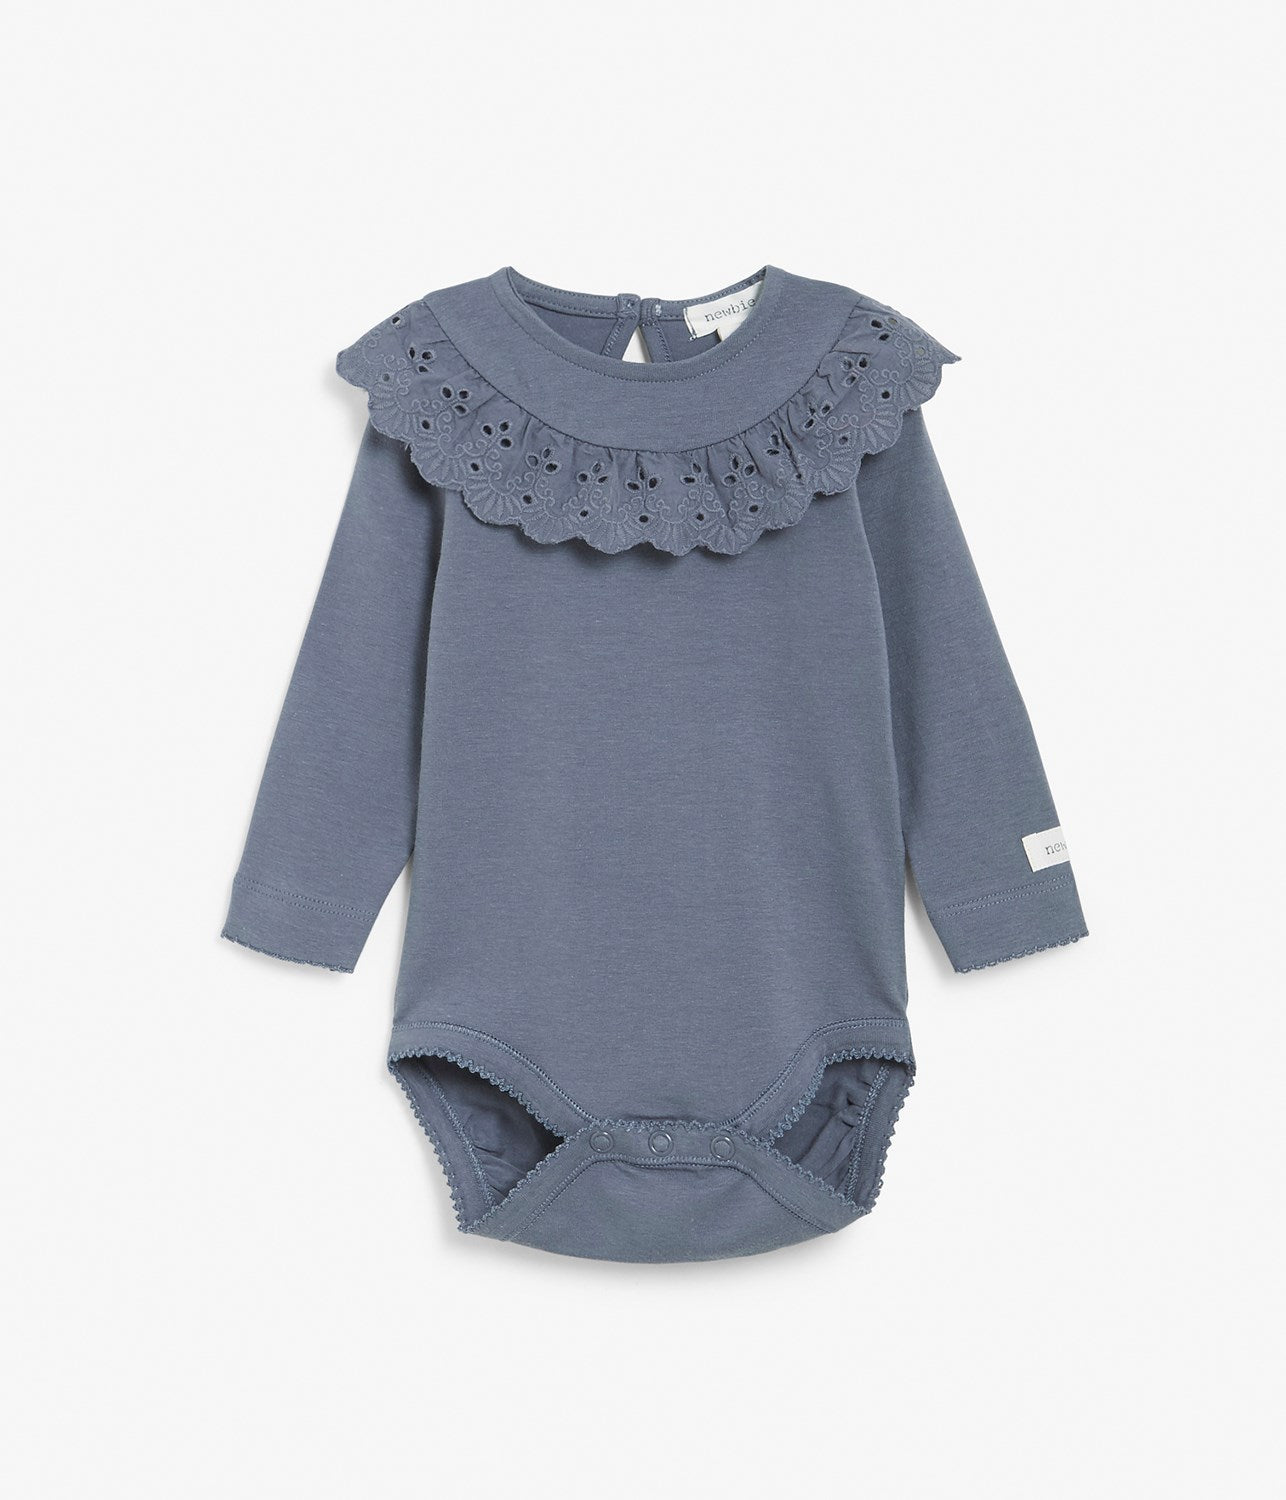 Baby blue body with frill collar